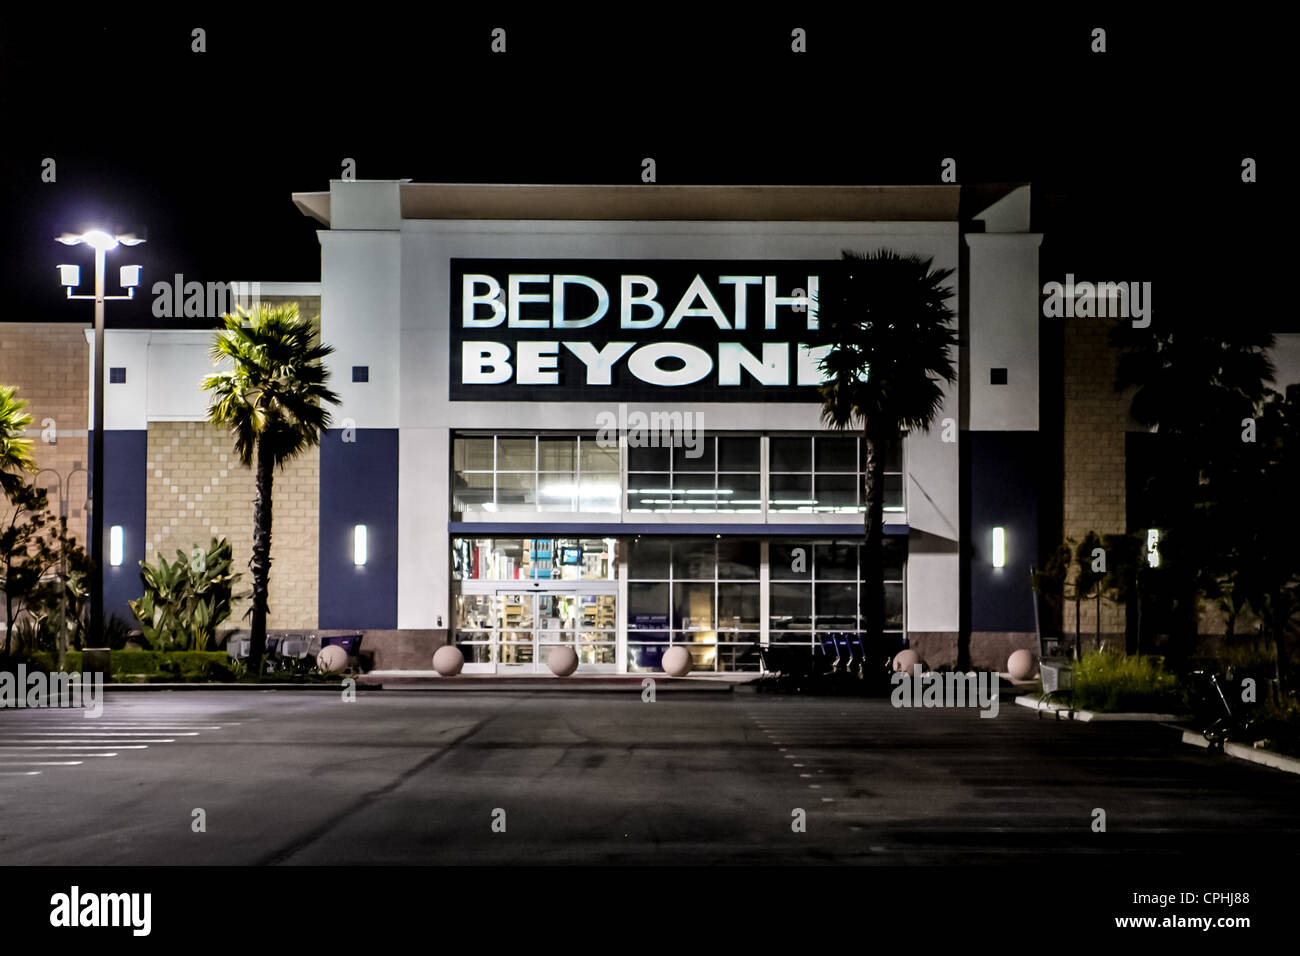 bed bath and beyond store stock photos bed bath and beyond store